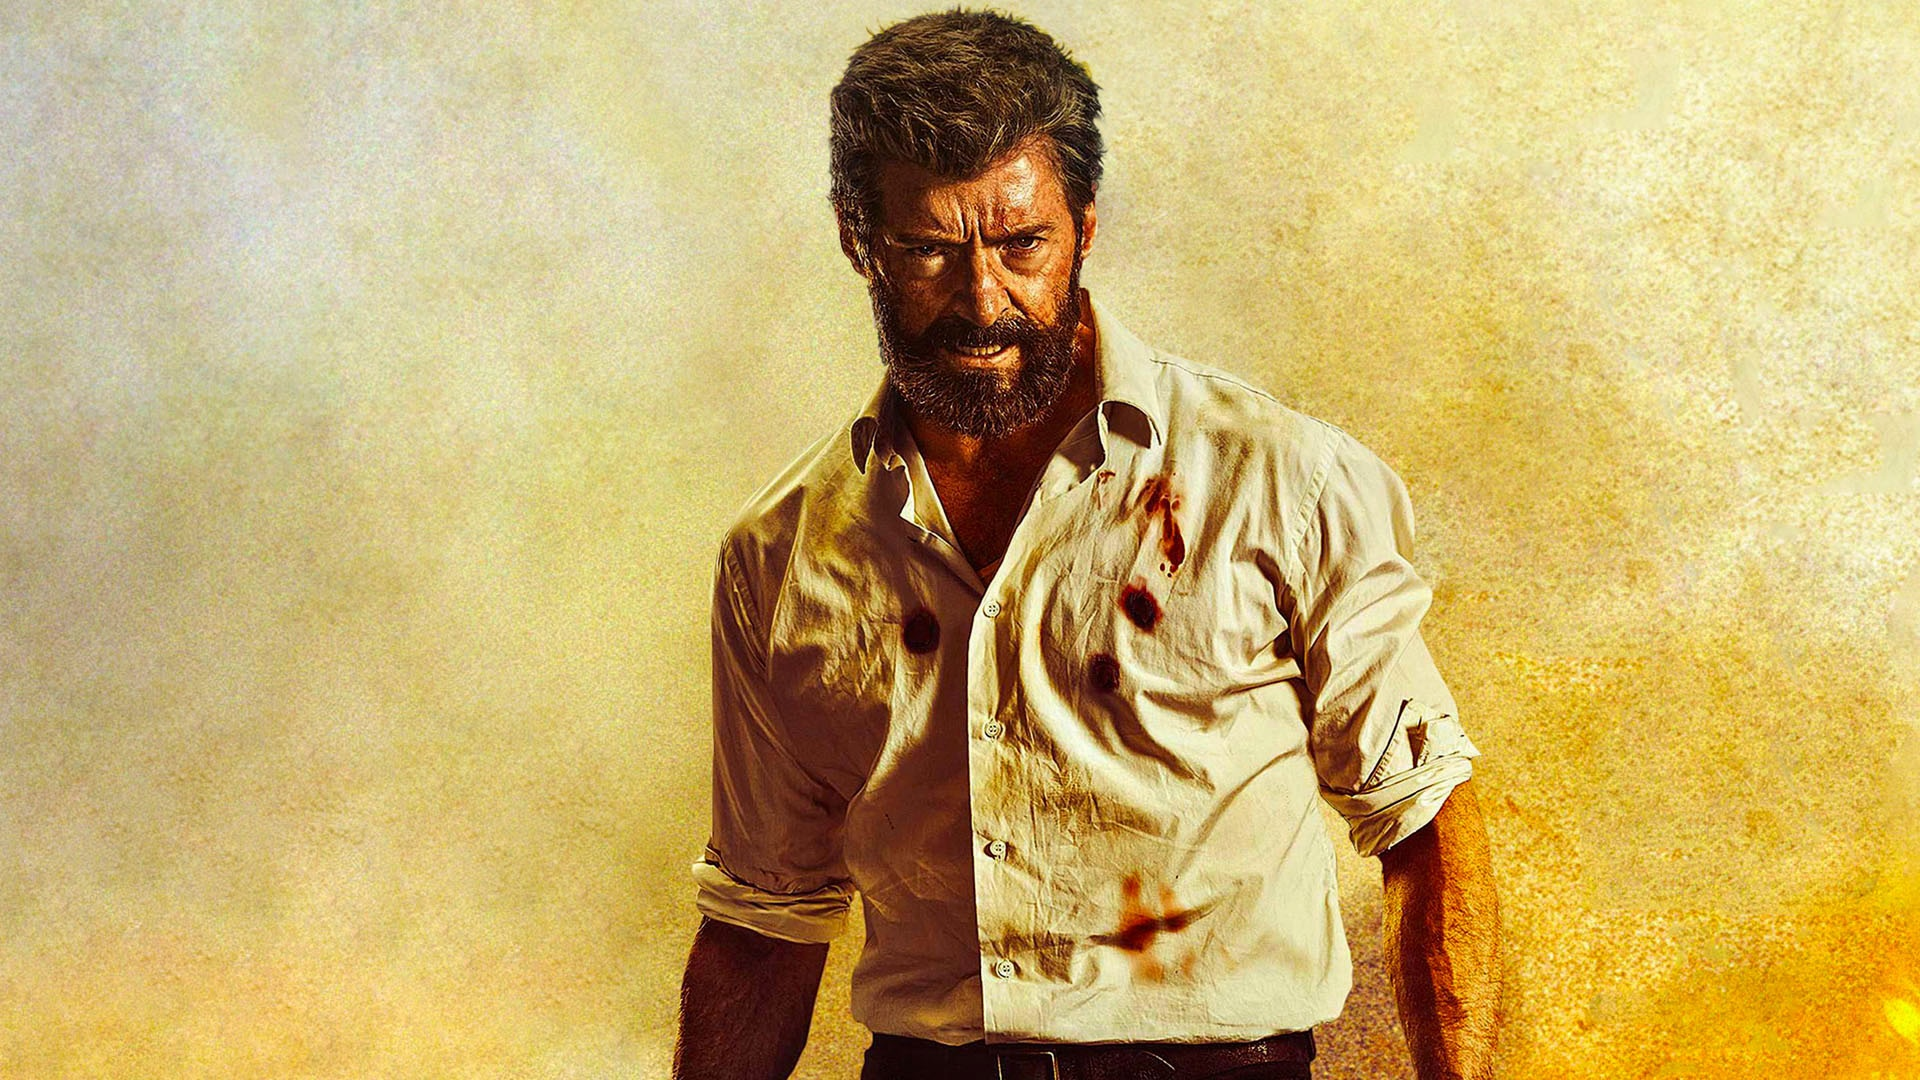 Logan 2017 Movie Hd Wallpaper: Logan 2017 Movie, HD Movies, 4k Wallpapers, Images